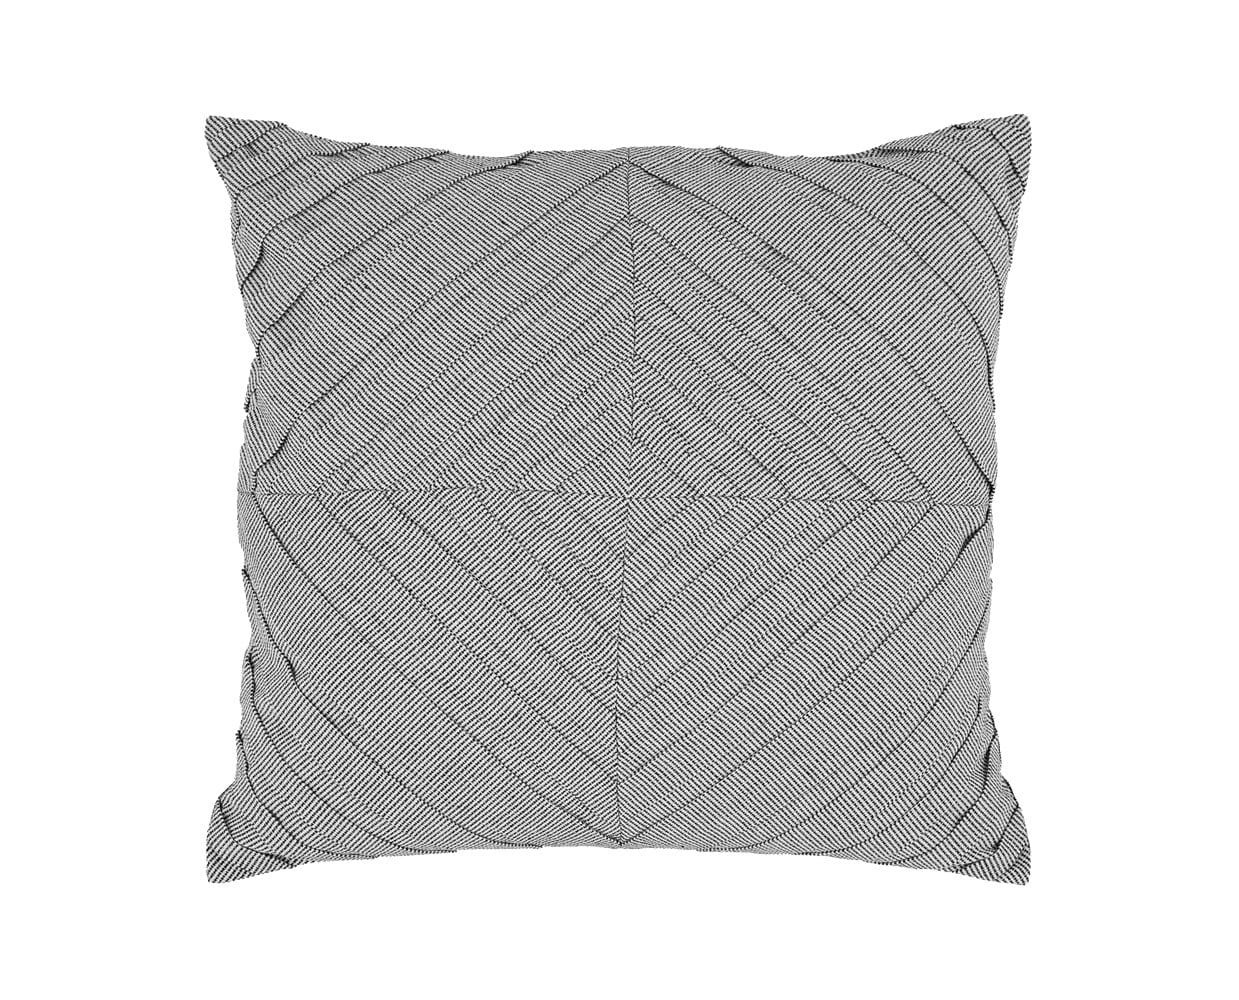 Umea Pintuck Pillow Cover - Grey